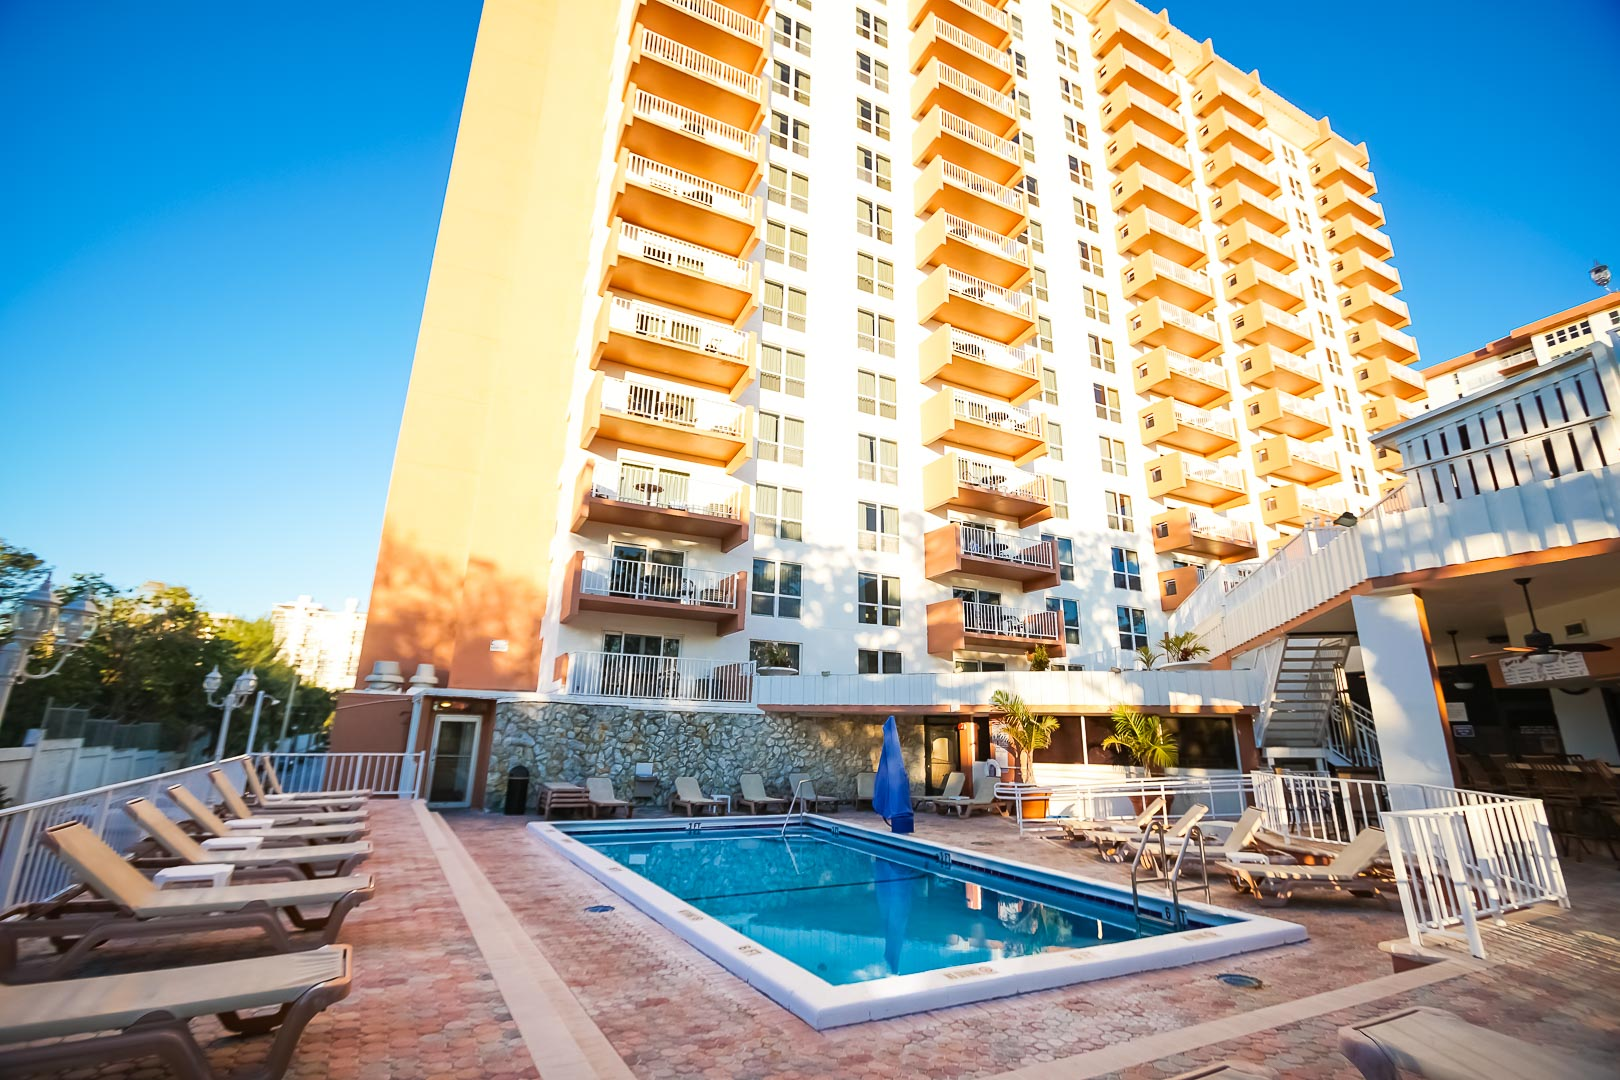 An outside view of the pool and stoic resort building at VRI's Ft. Lauderdale Beach Resort in Florida.